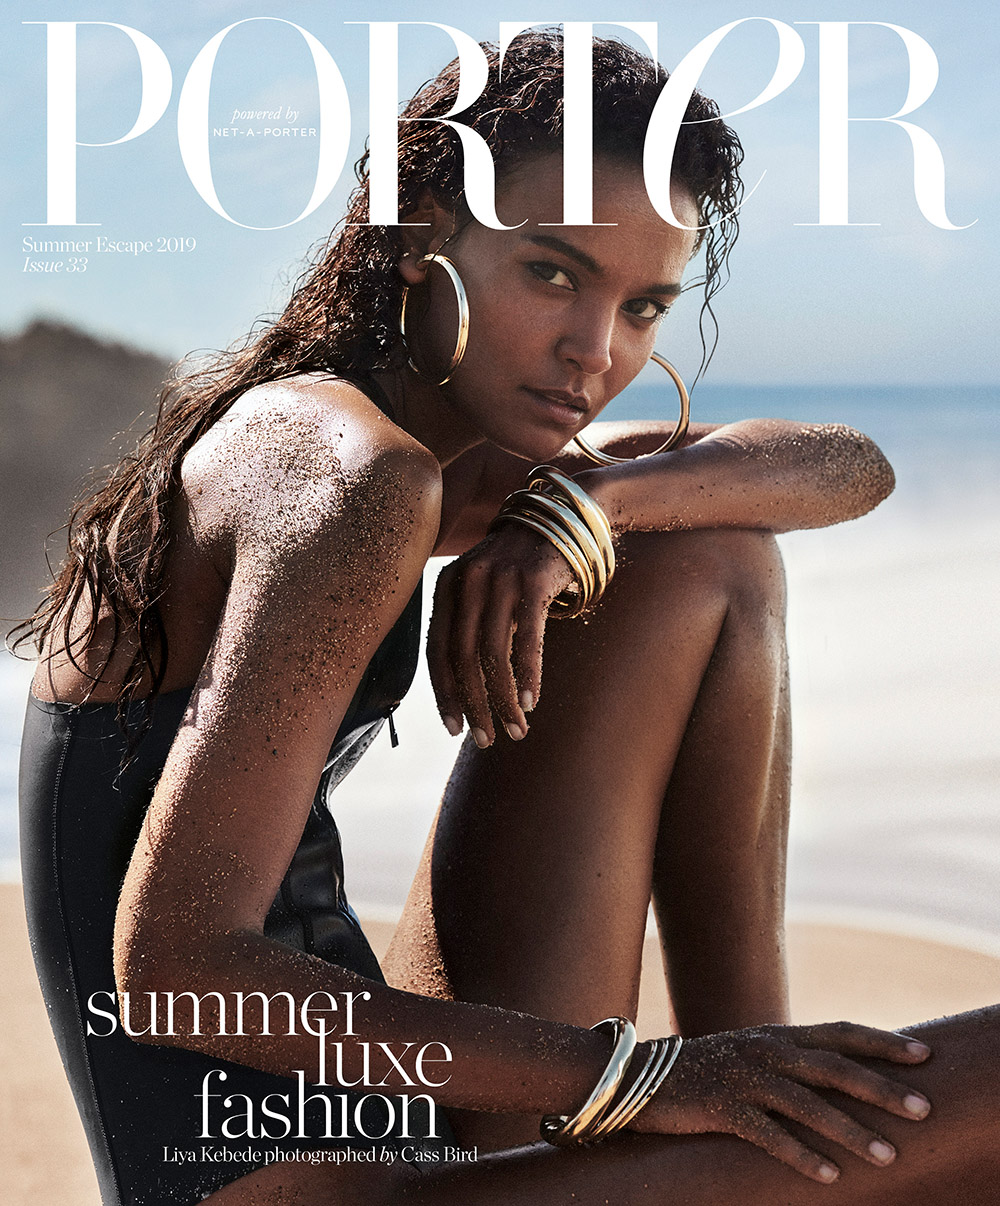 LIYA KEBEDE NOW_THEN ECO SWIMWEAR SUSTAINABLE PORTER MAGAZINE